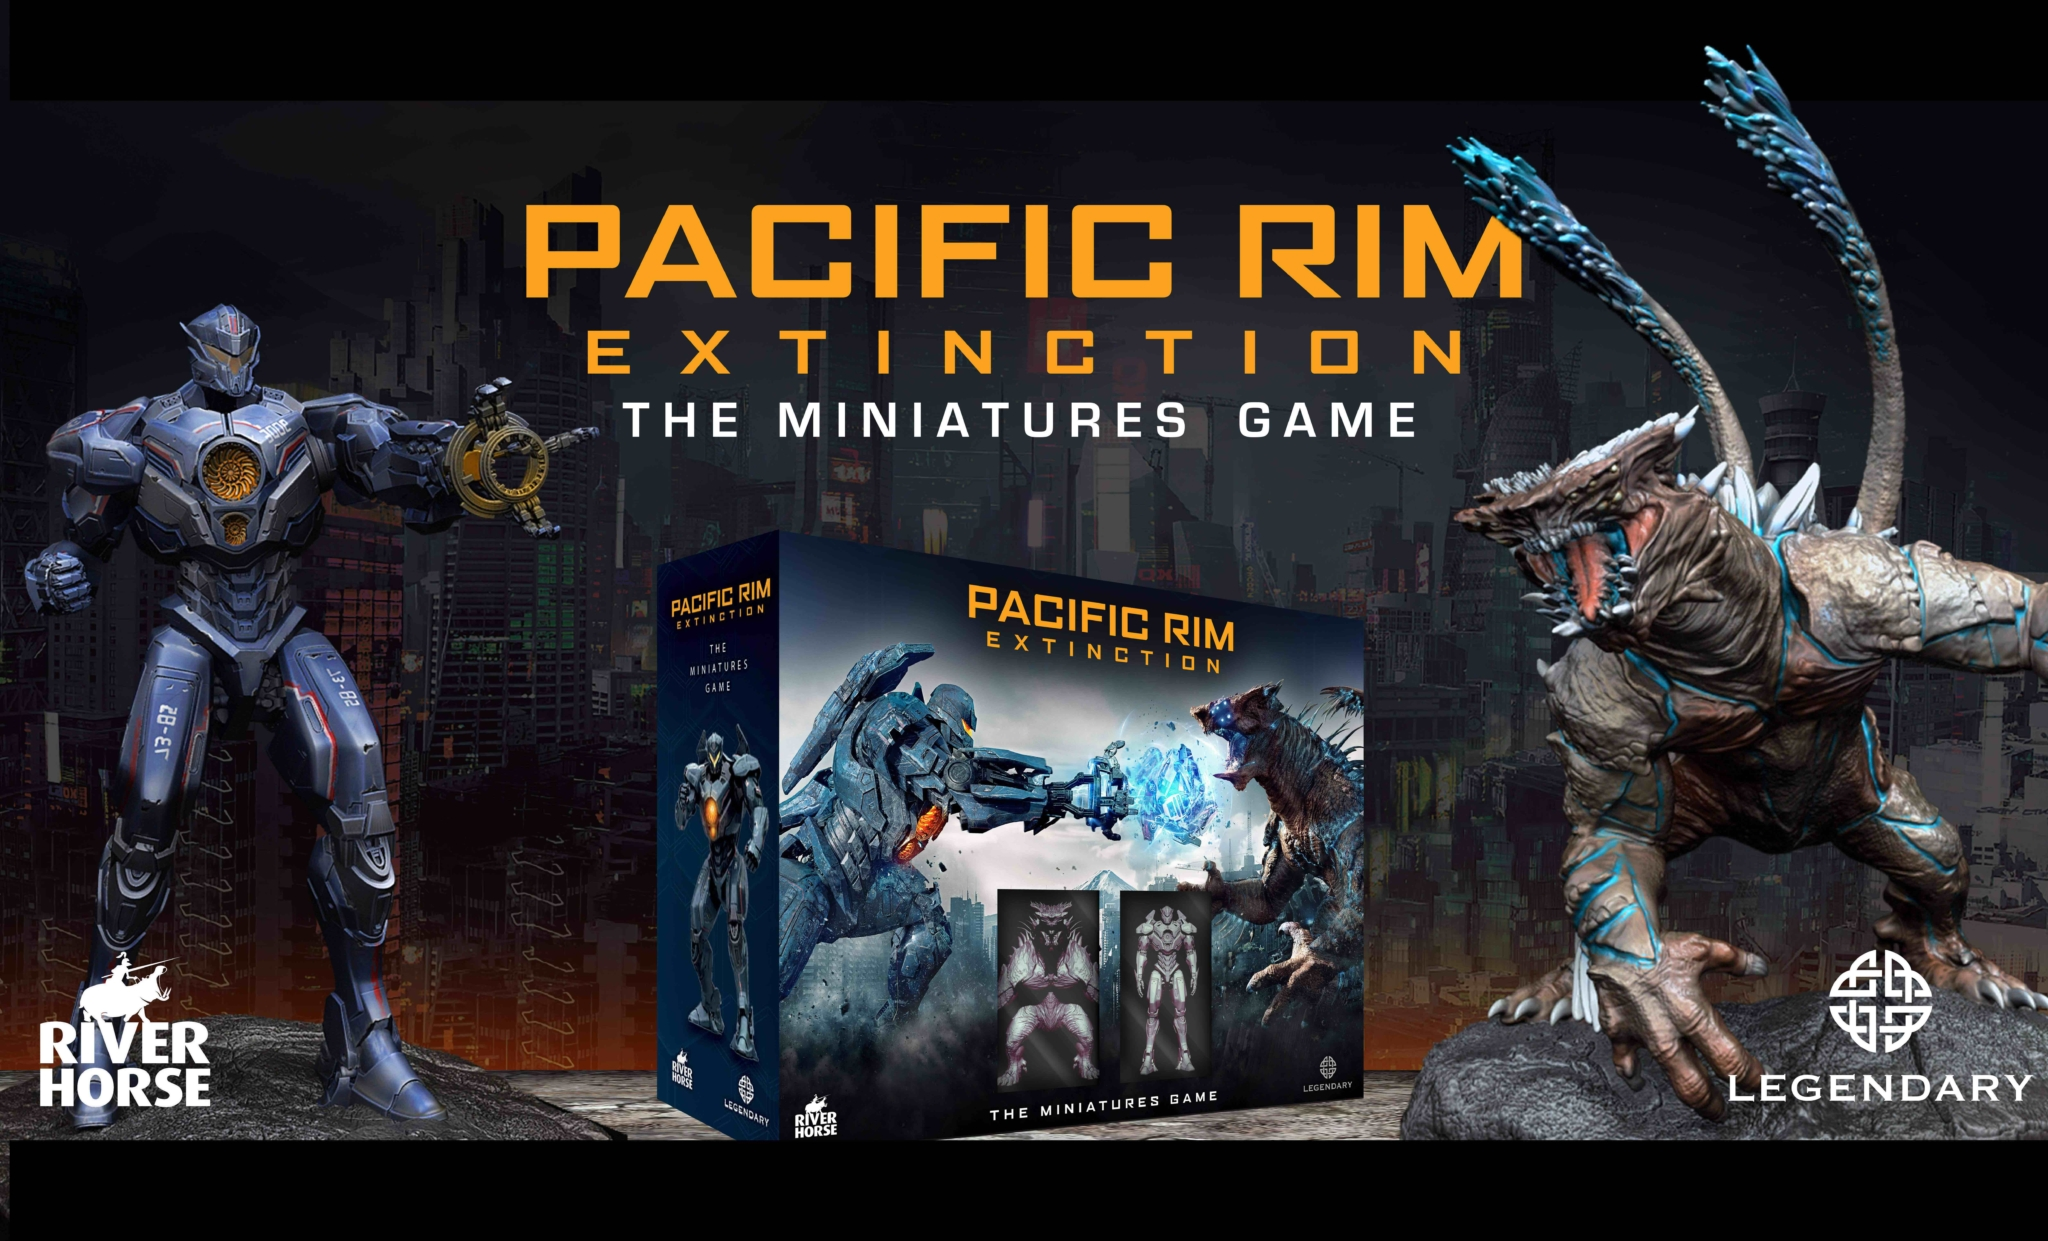 Pacific Rim: Extinction Overview image, now available for late pledge